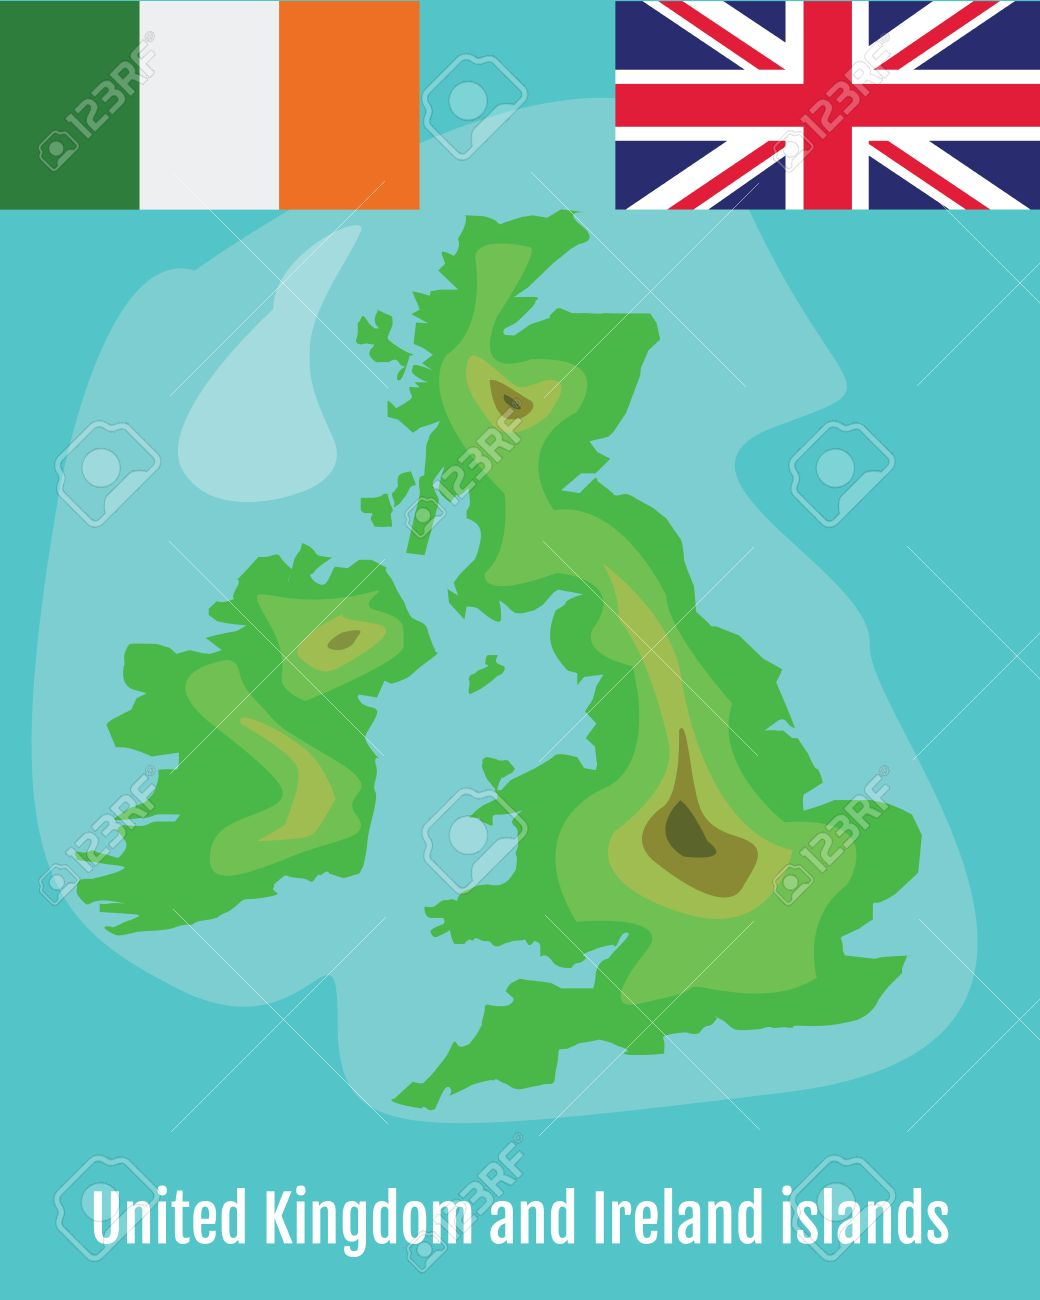 Map Of Ireland With Islands.Map Of United Kingdom And Ireland Islands School Geography Map